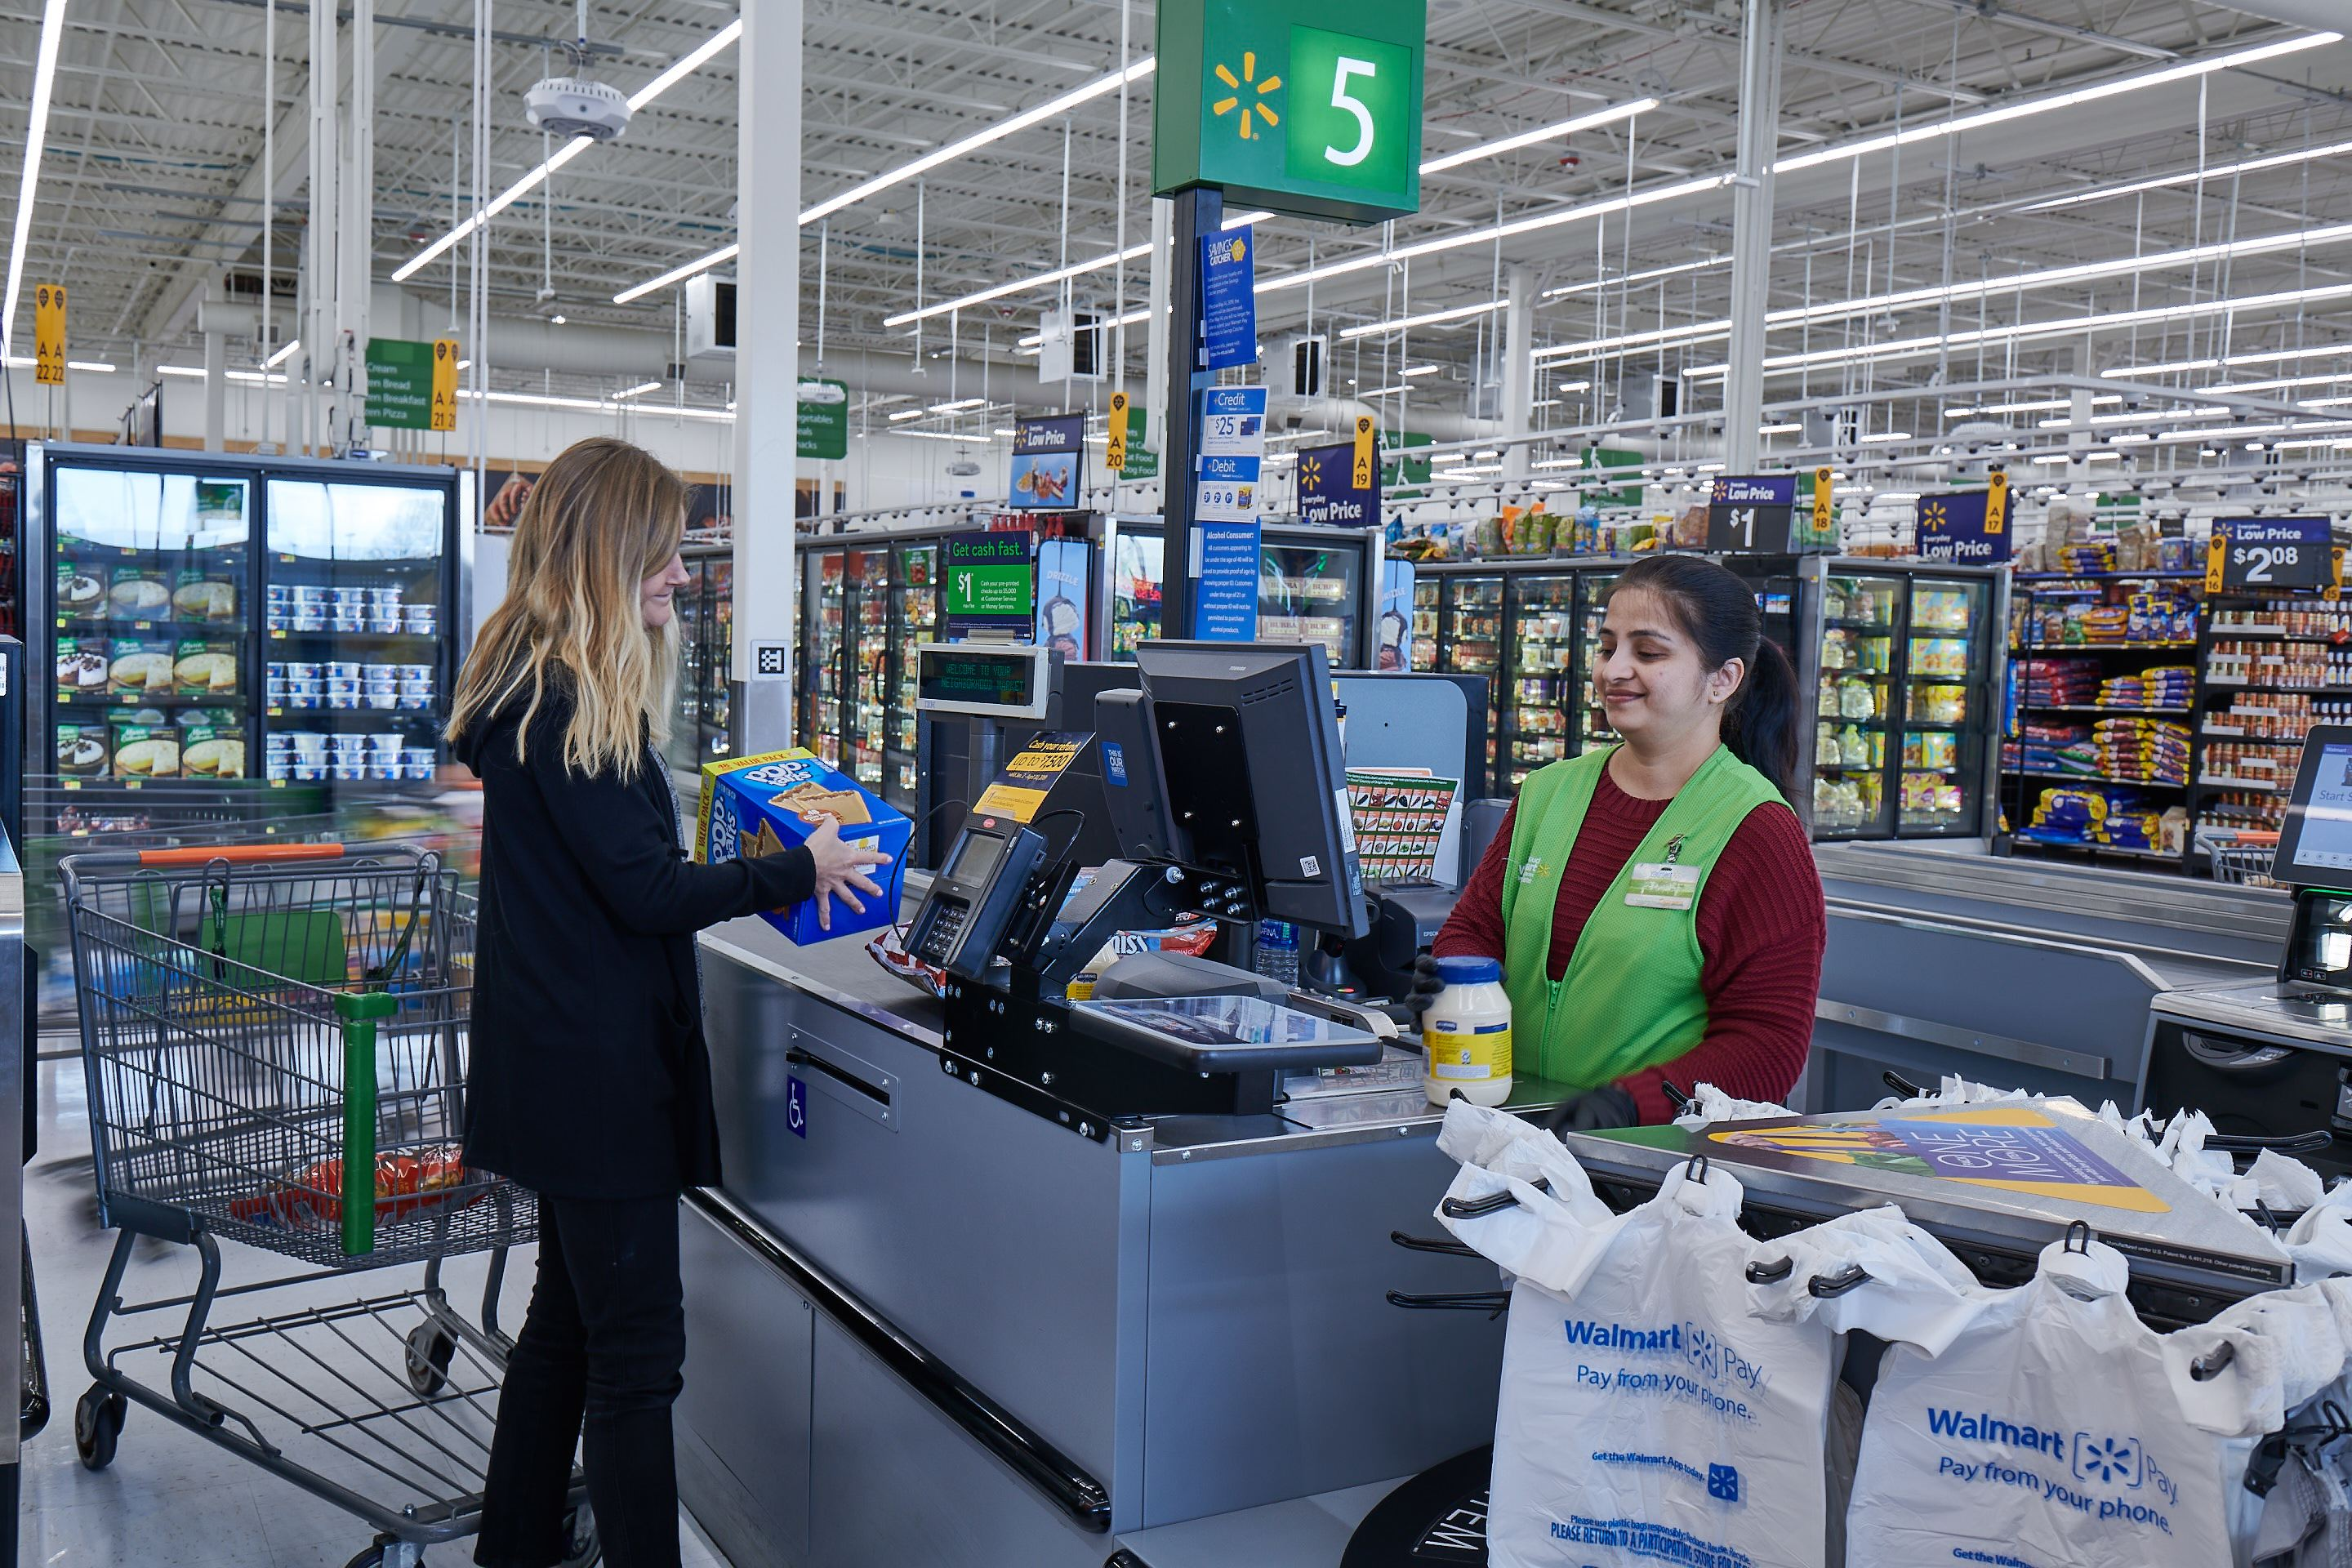 Customer checking out with associate at IRL Walmart